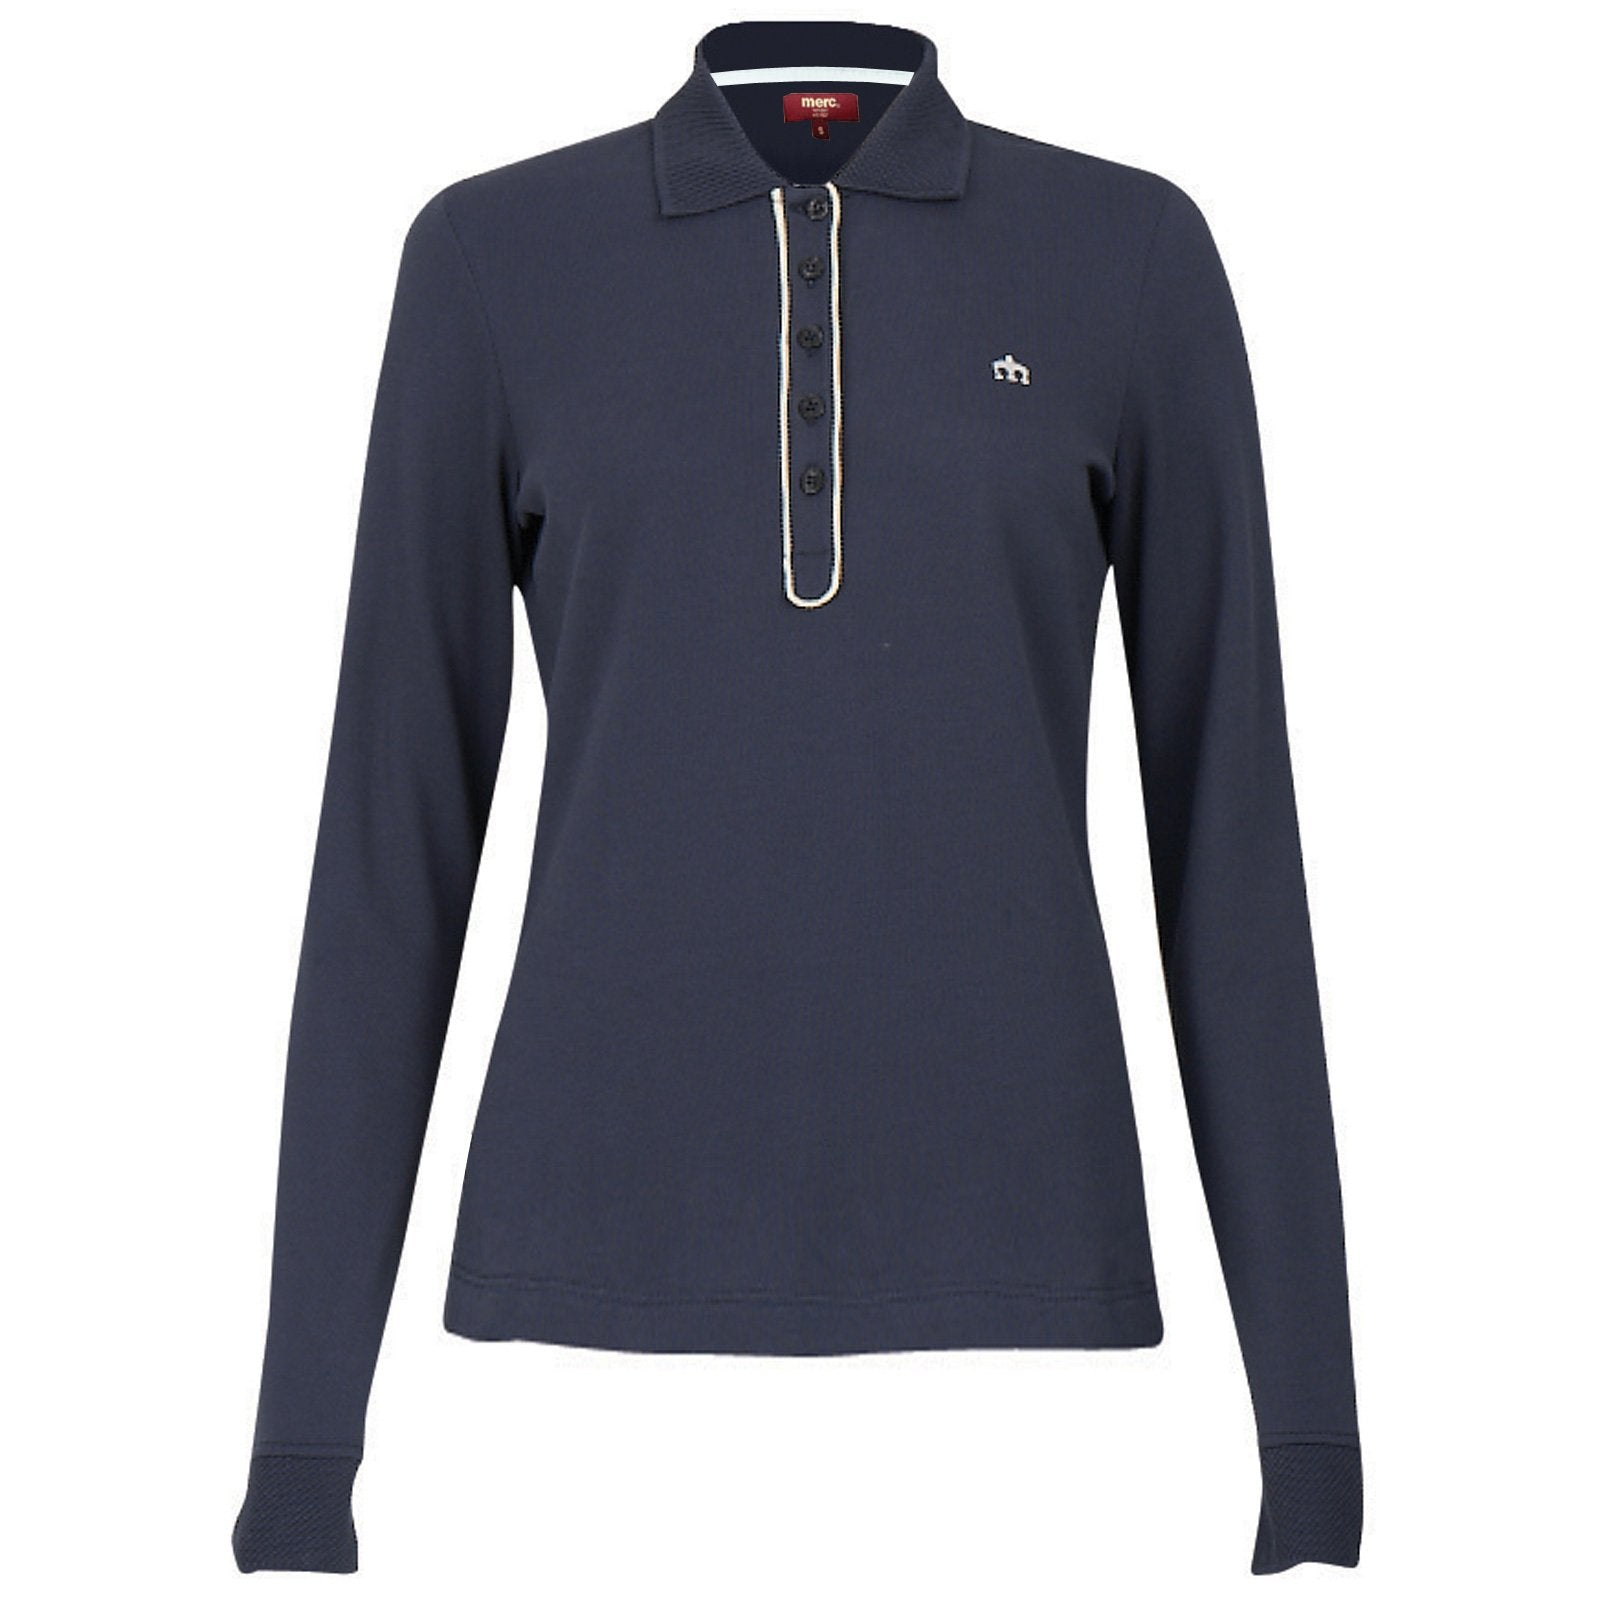 Pamela Polo Shirt - Merc London